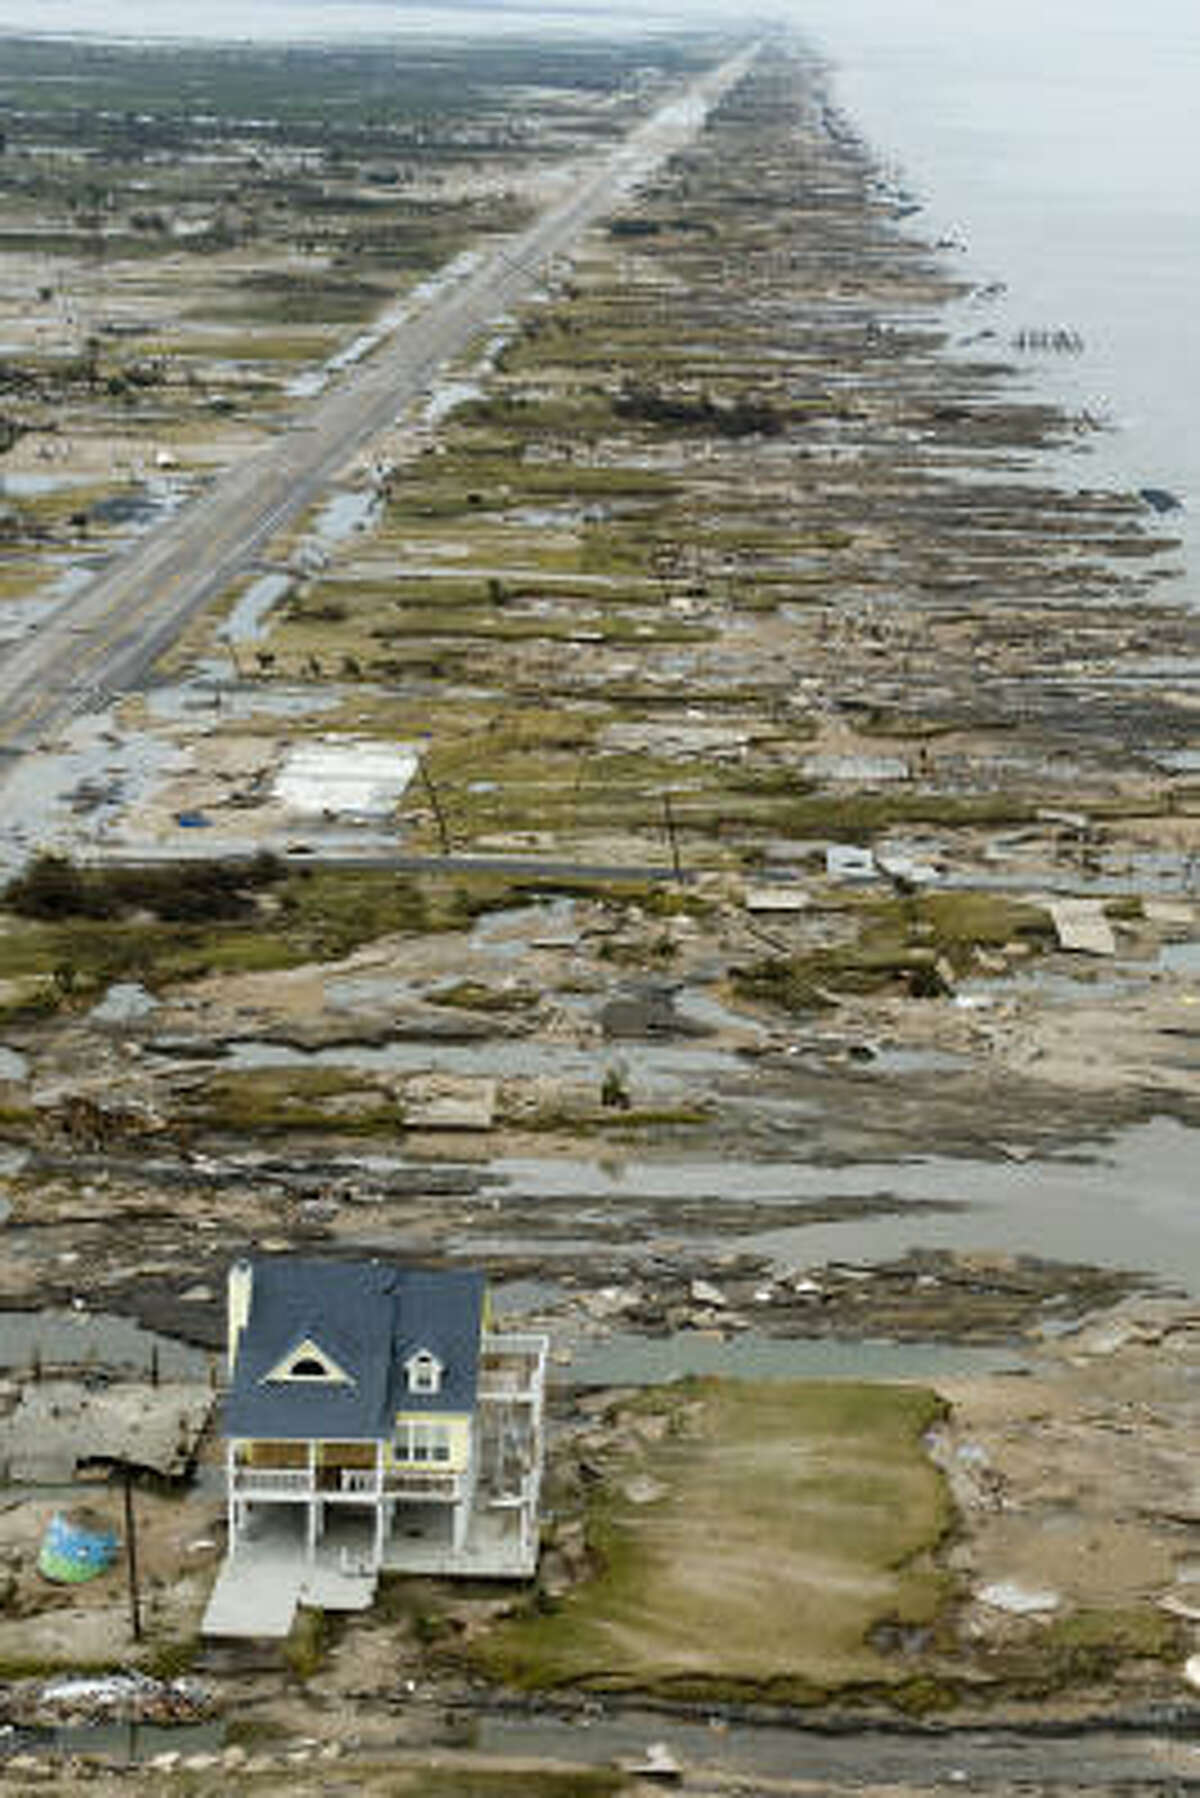 A single house is left standing amidst the devastation left by Hurricane Ike in Gilchrist, Texas.